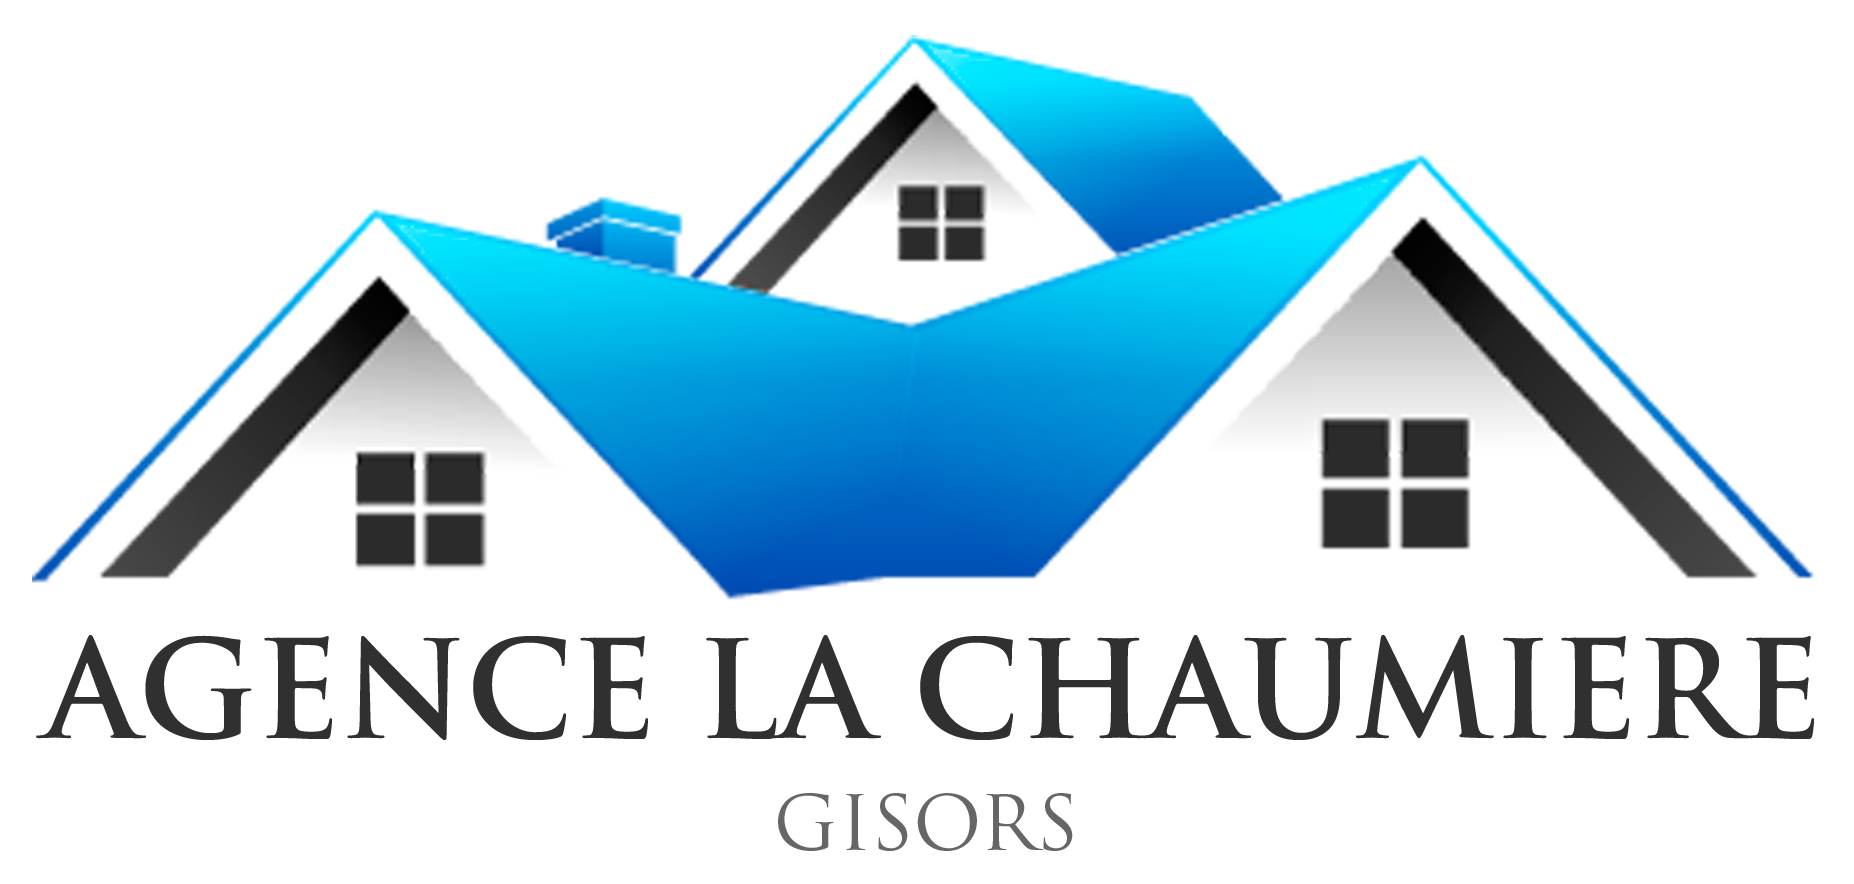 Immobilier gisors delincourt morgny trie chateau - Piscine gisors trie chateau ...